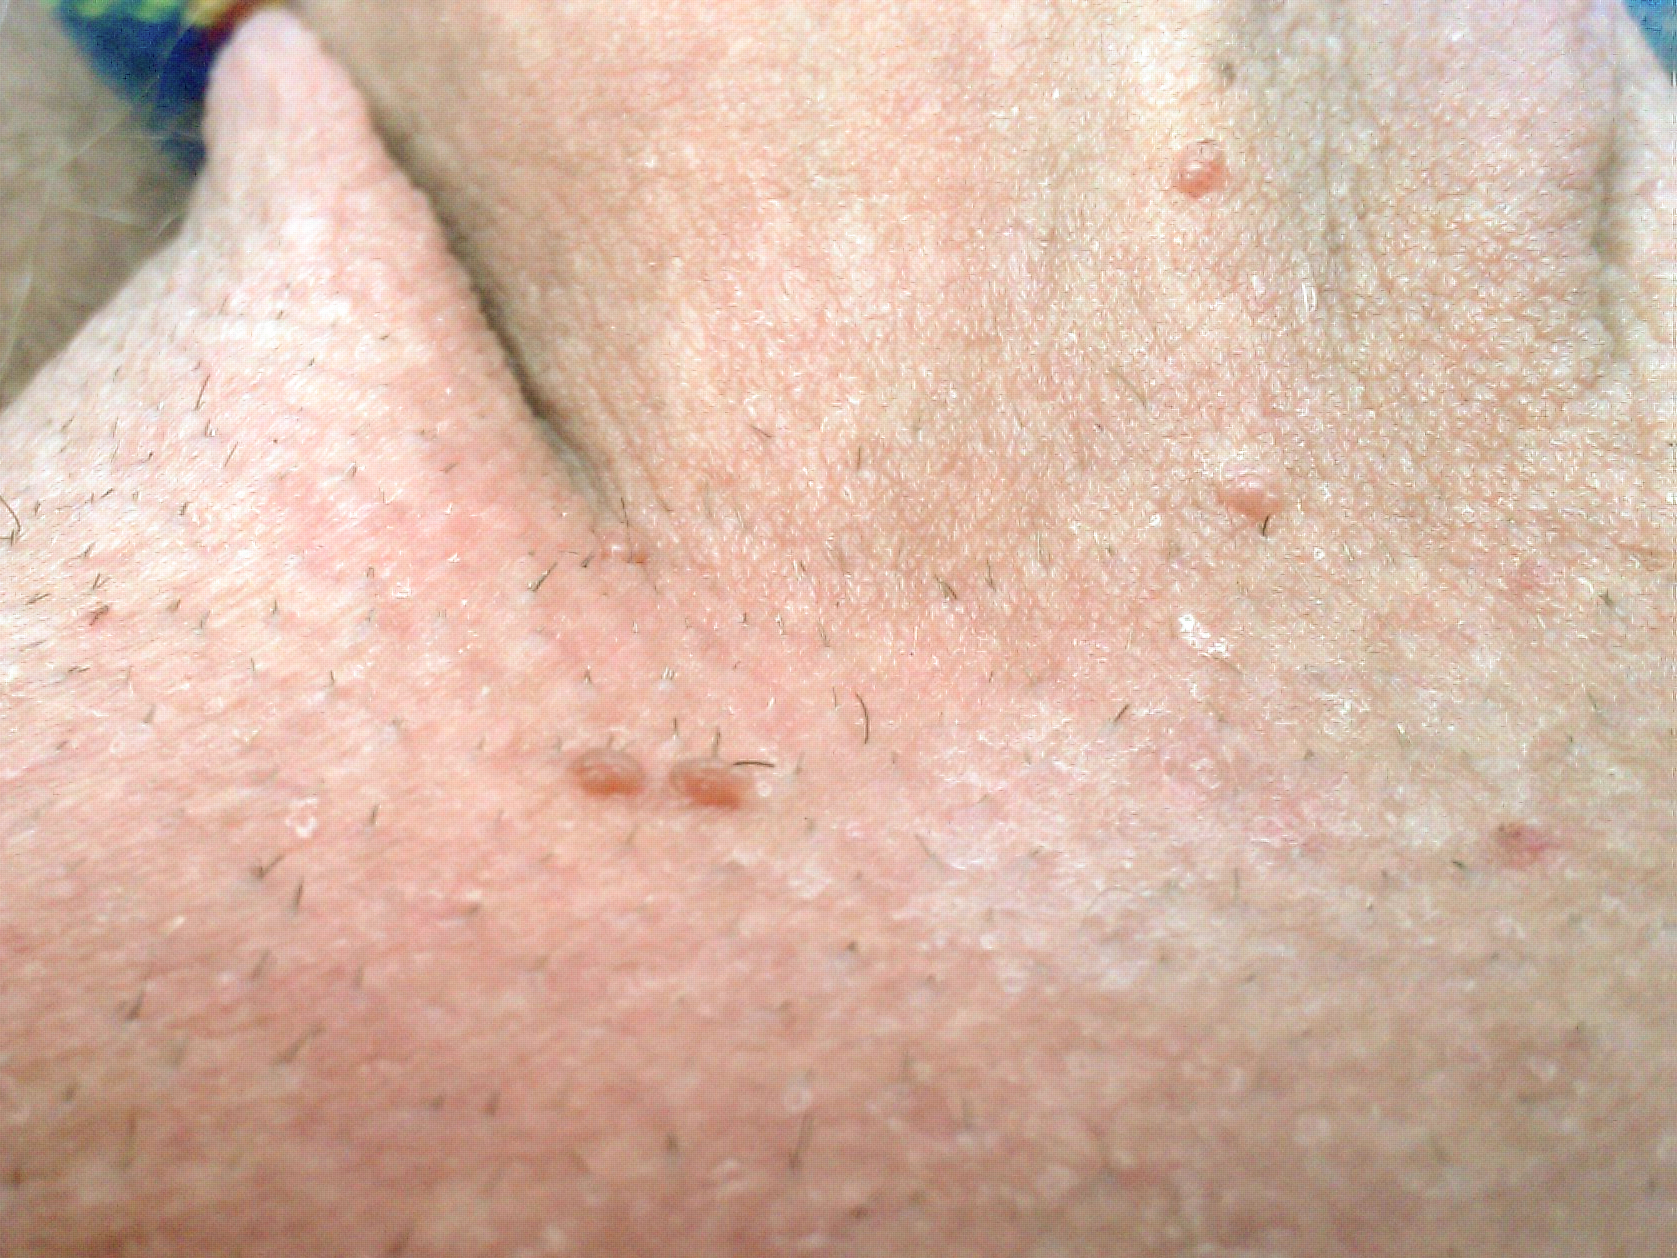 Hpv warts yeast infection. Human papillomavirus infection in mouth